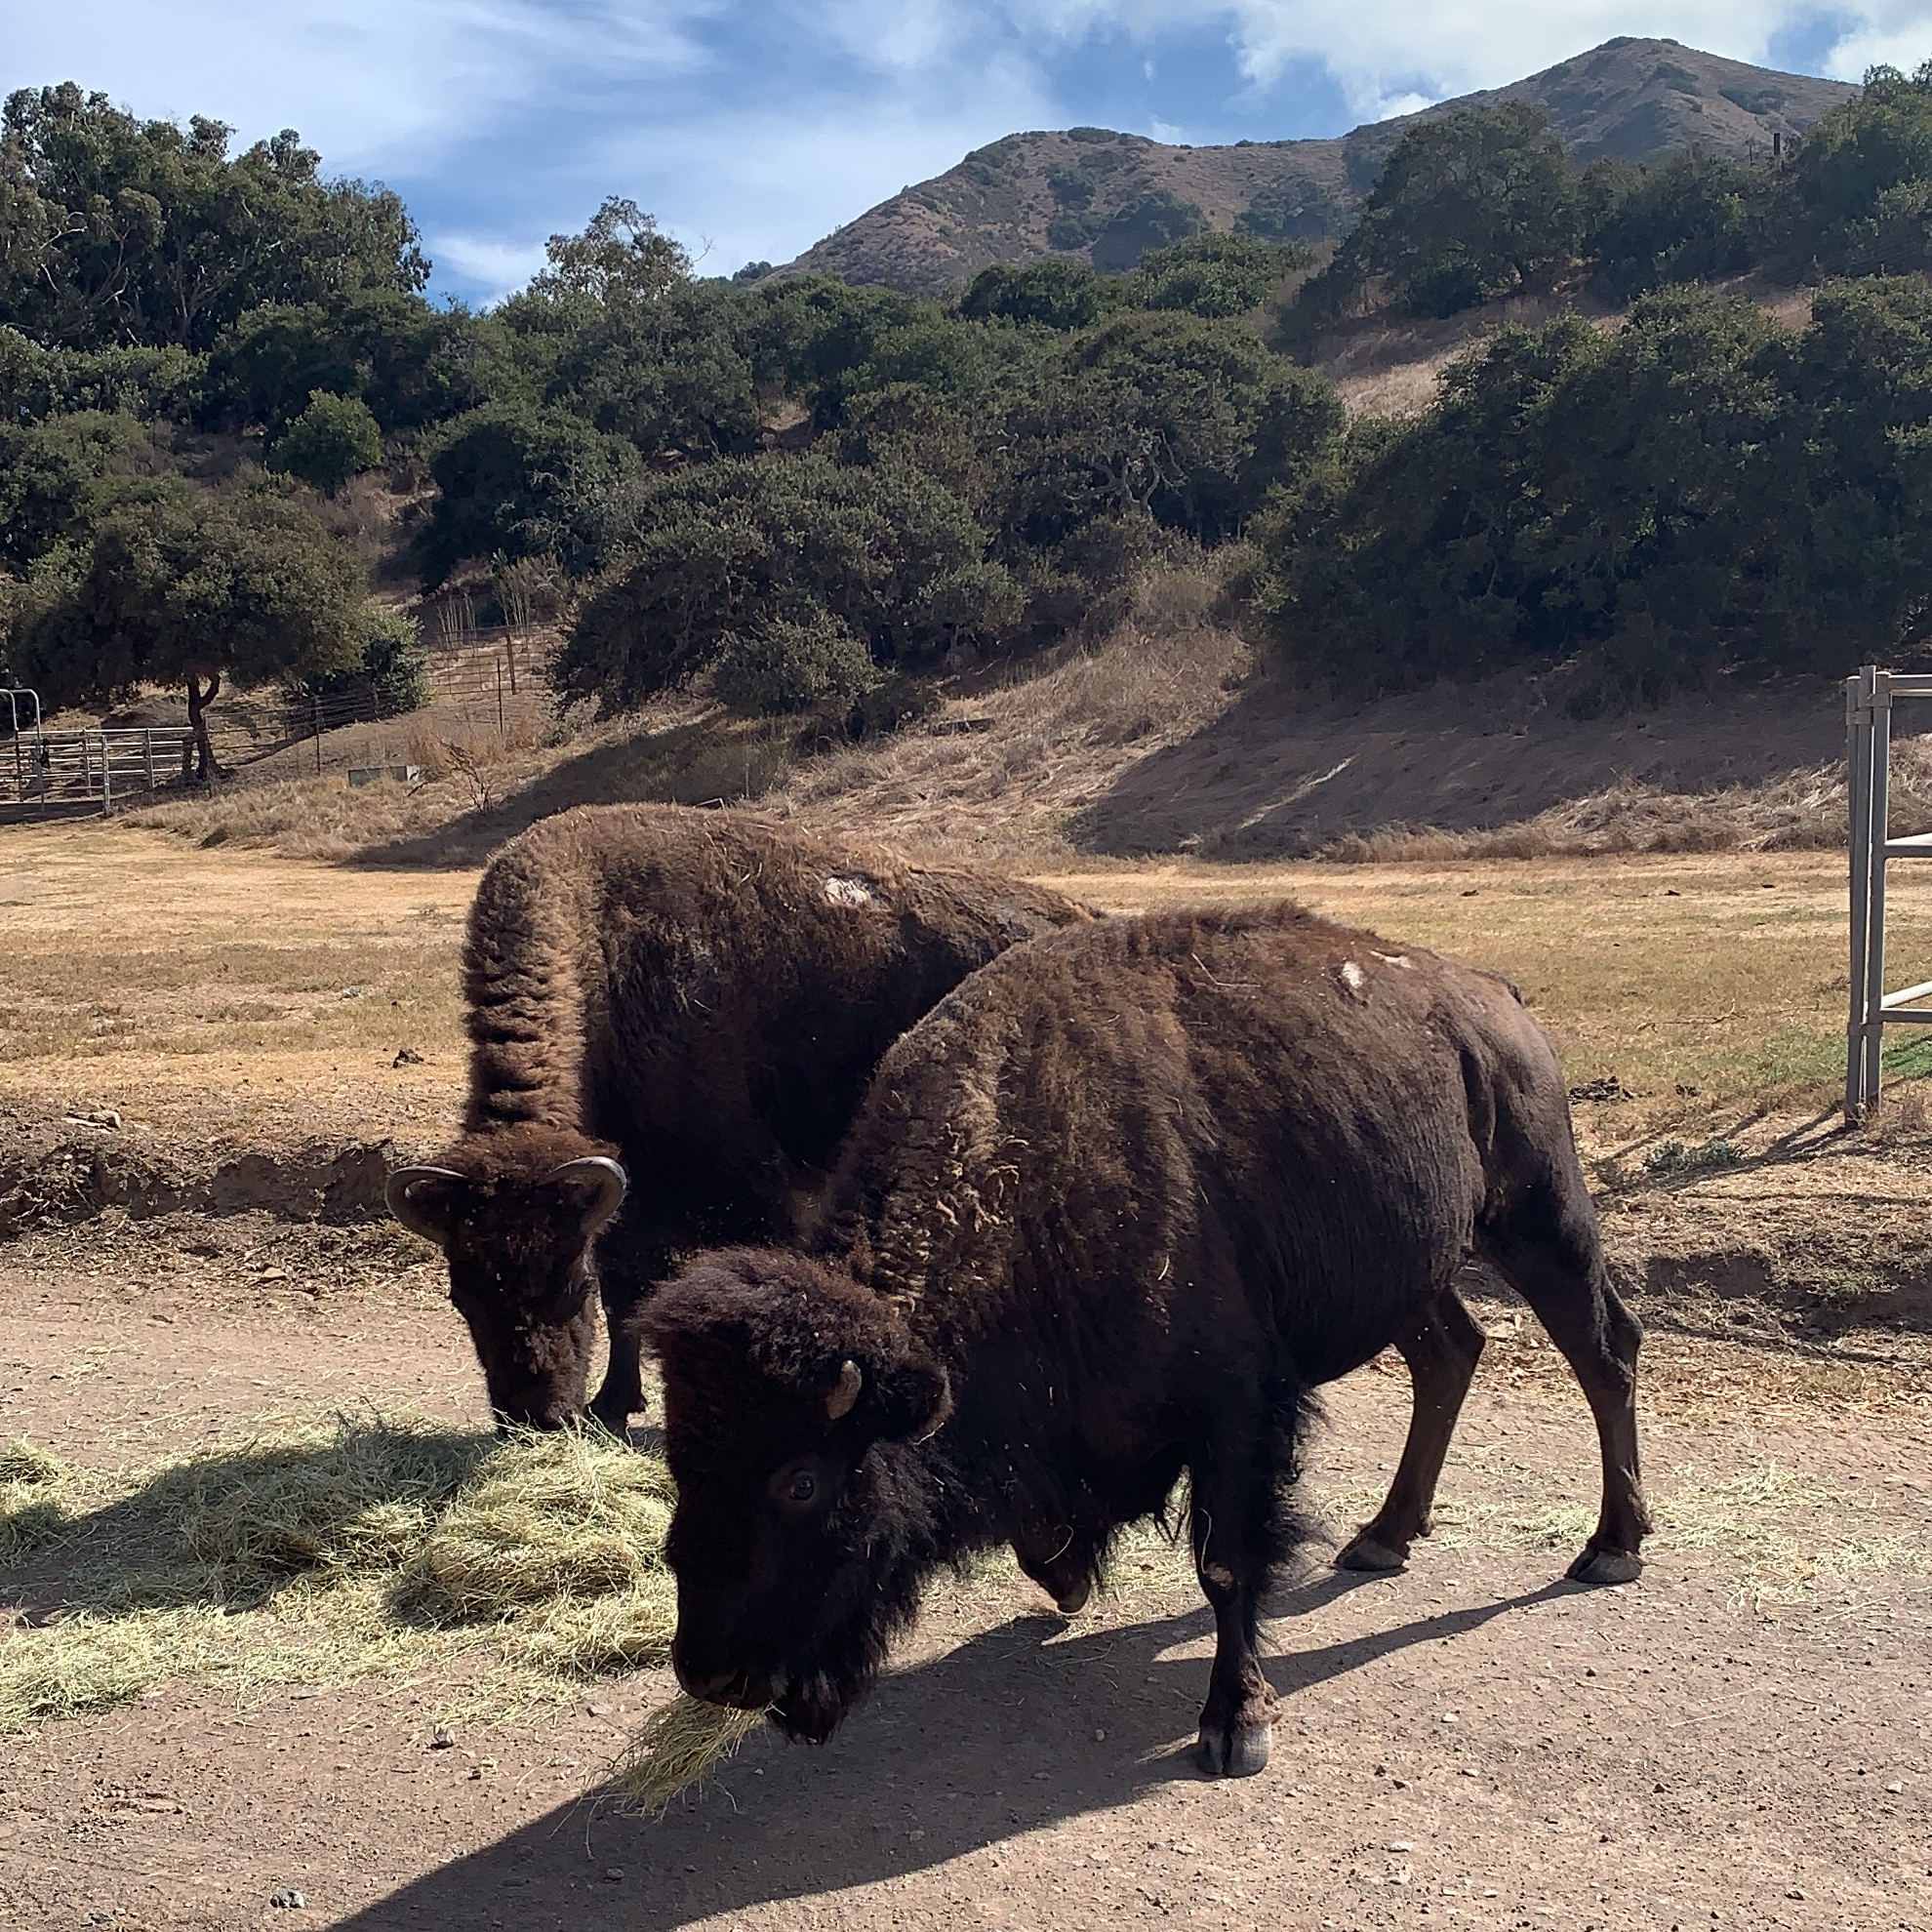 Bison in the Island of Catalina Conservancy does an amazing tour of the undeveloped parts of the island. We learned about the endemic and invasive species, and the work they're doing to protect the island.   For Animals For Earth